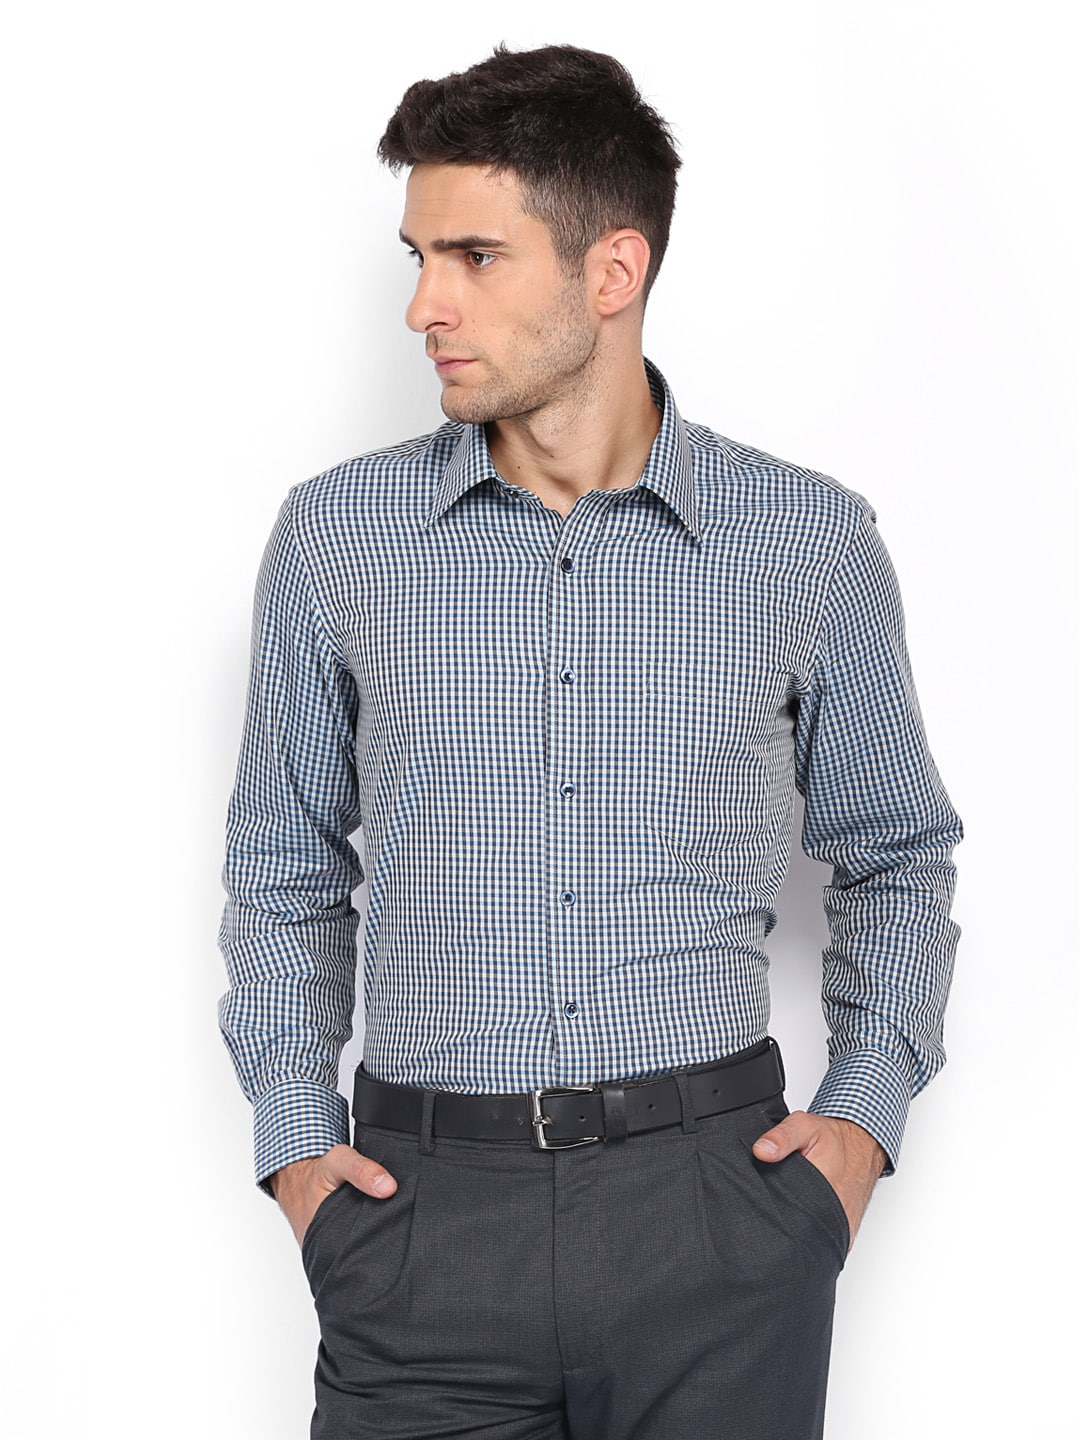 Oxemberg Oxemberg Men Off-White & Blue Checked Slim Fit Formal Shirt (Multicolor)